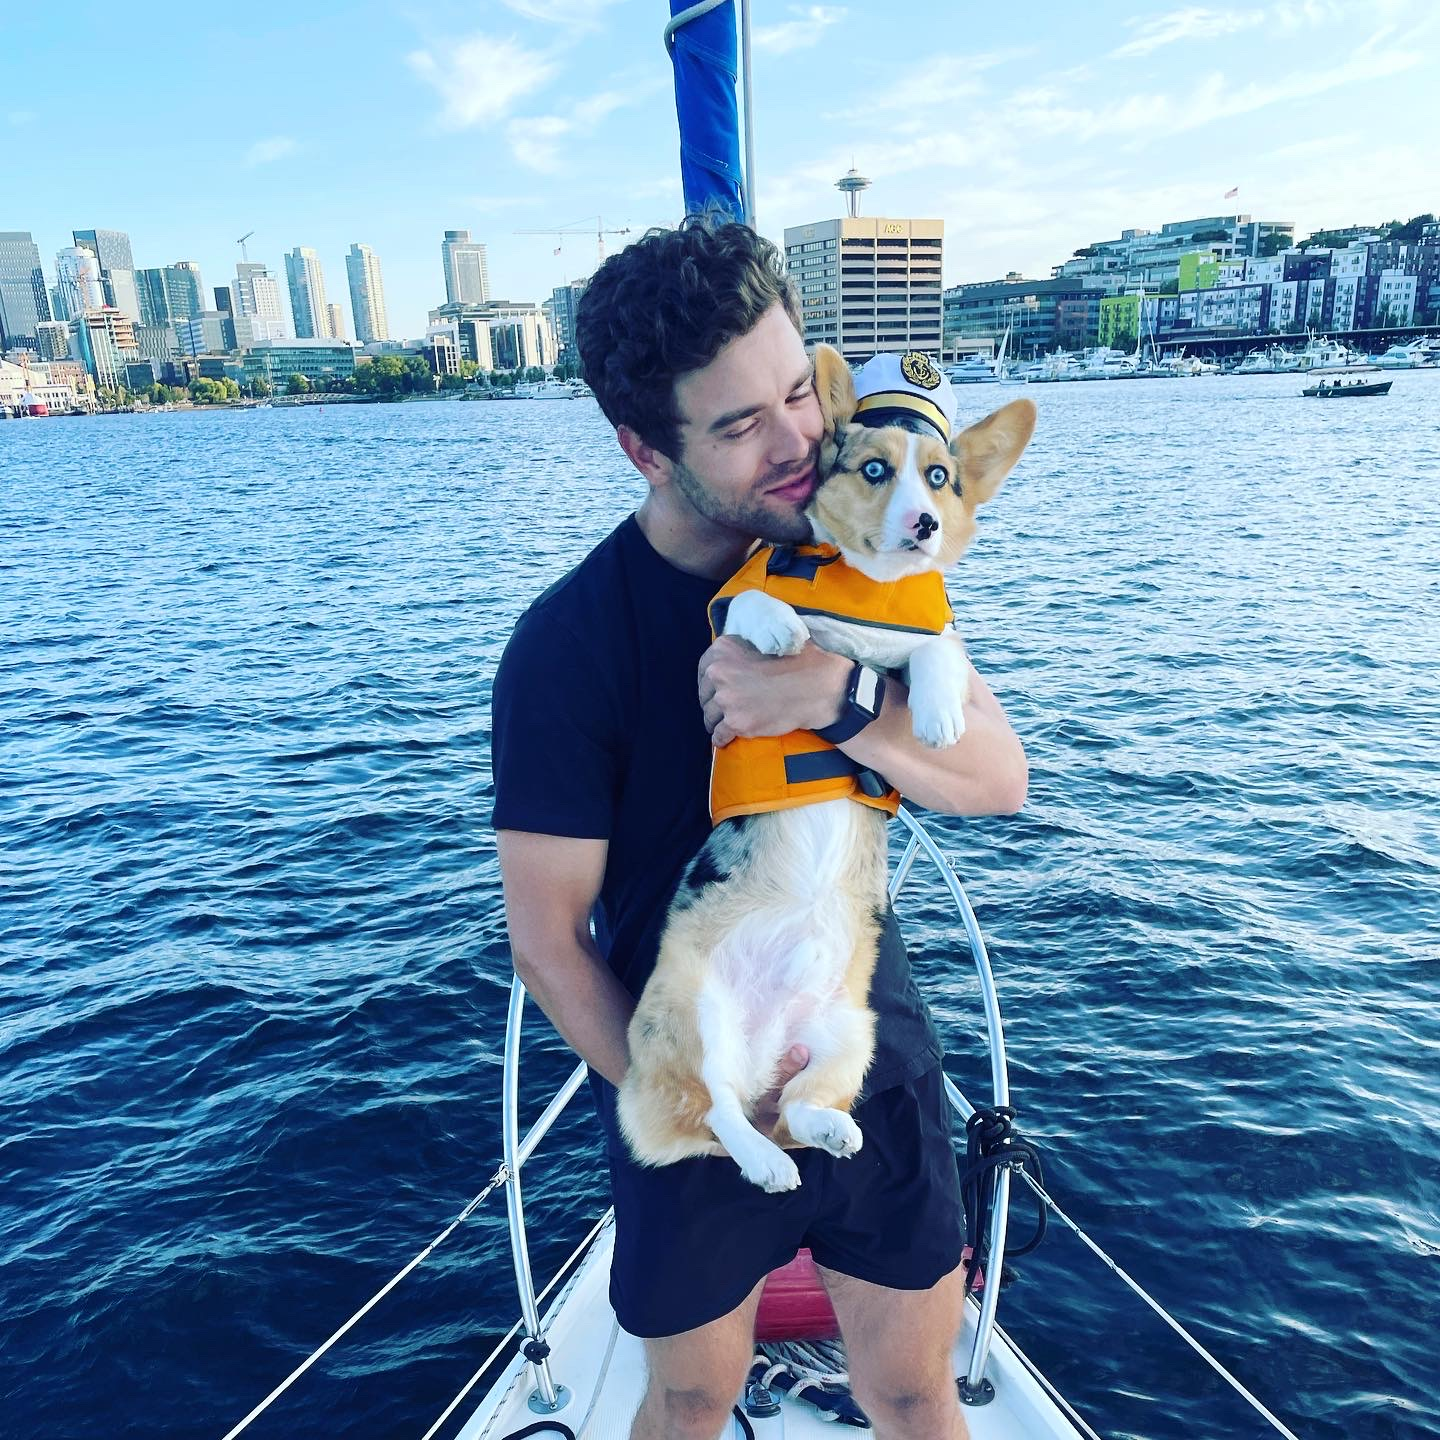 Gage holding a corgi on the bow of a sailboat